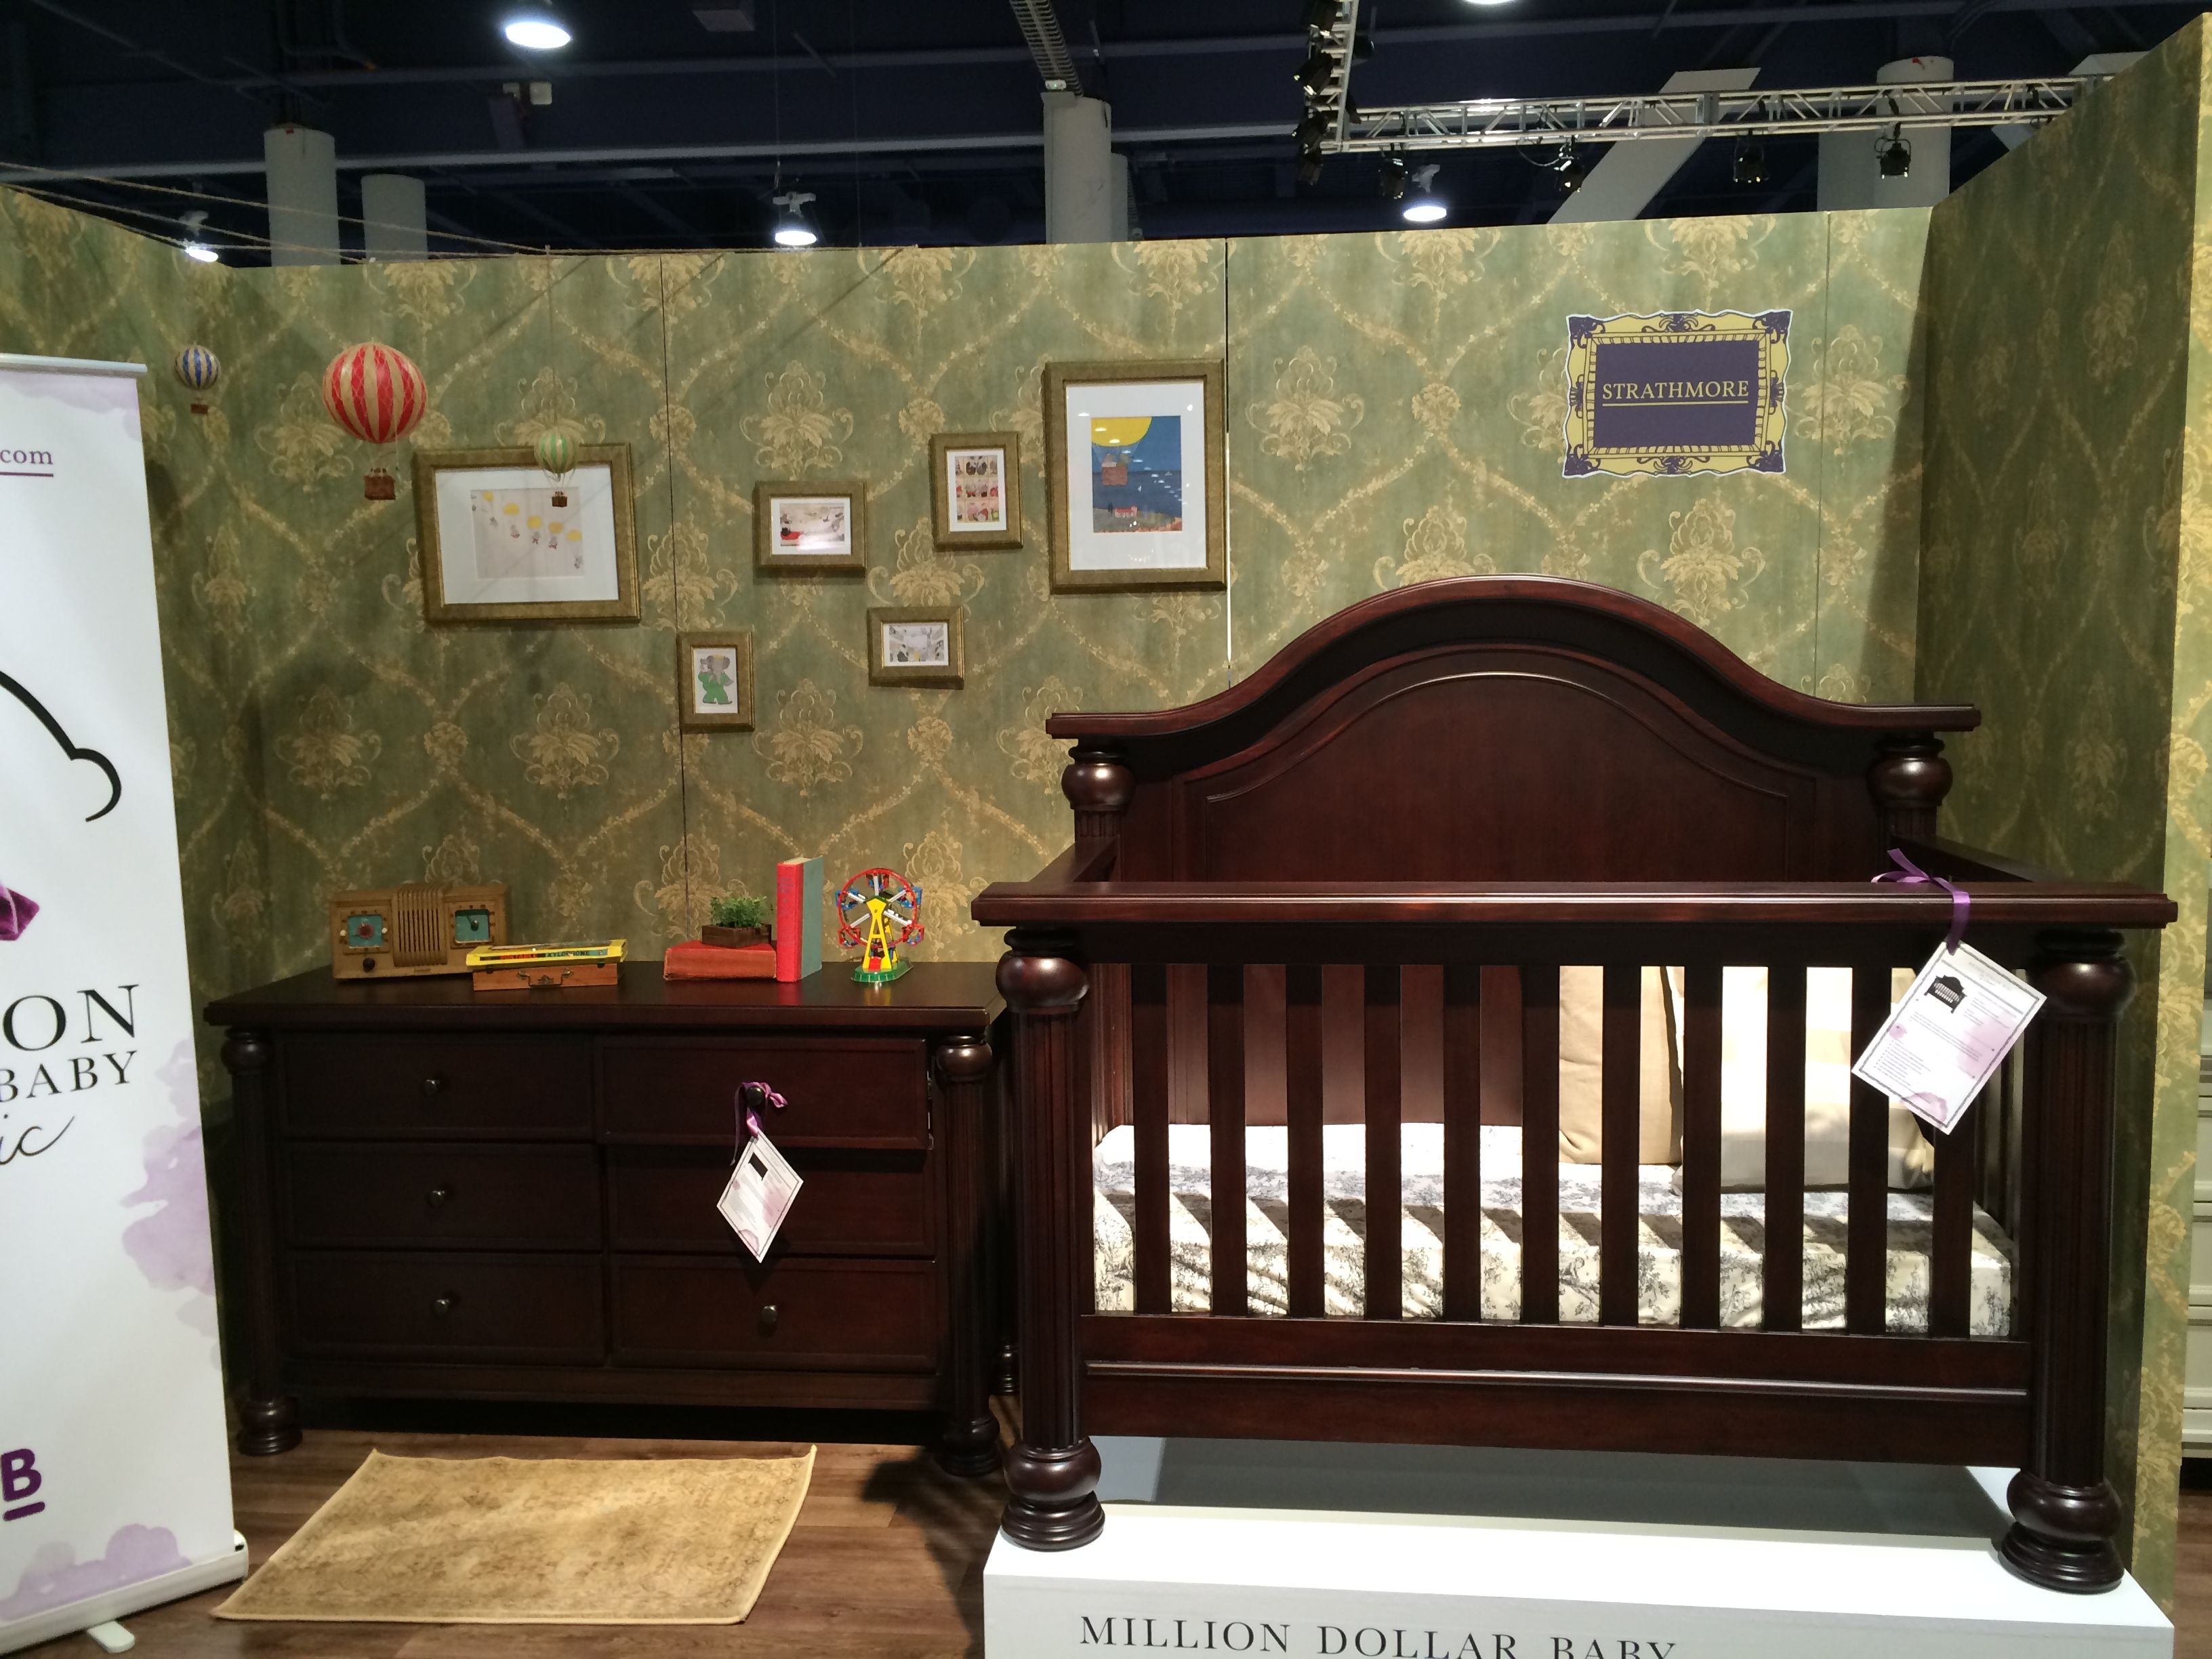 The new Strathmore collection from MillionDollarBaby is classic